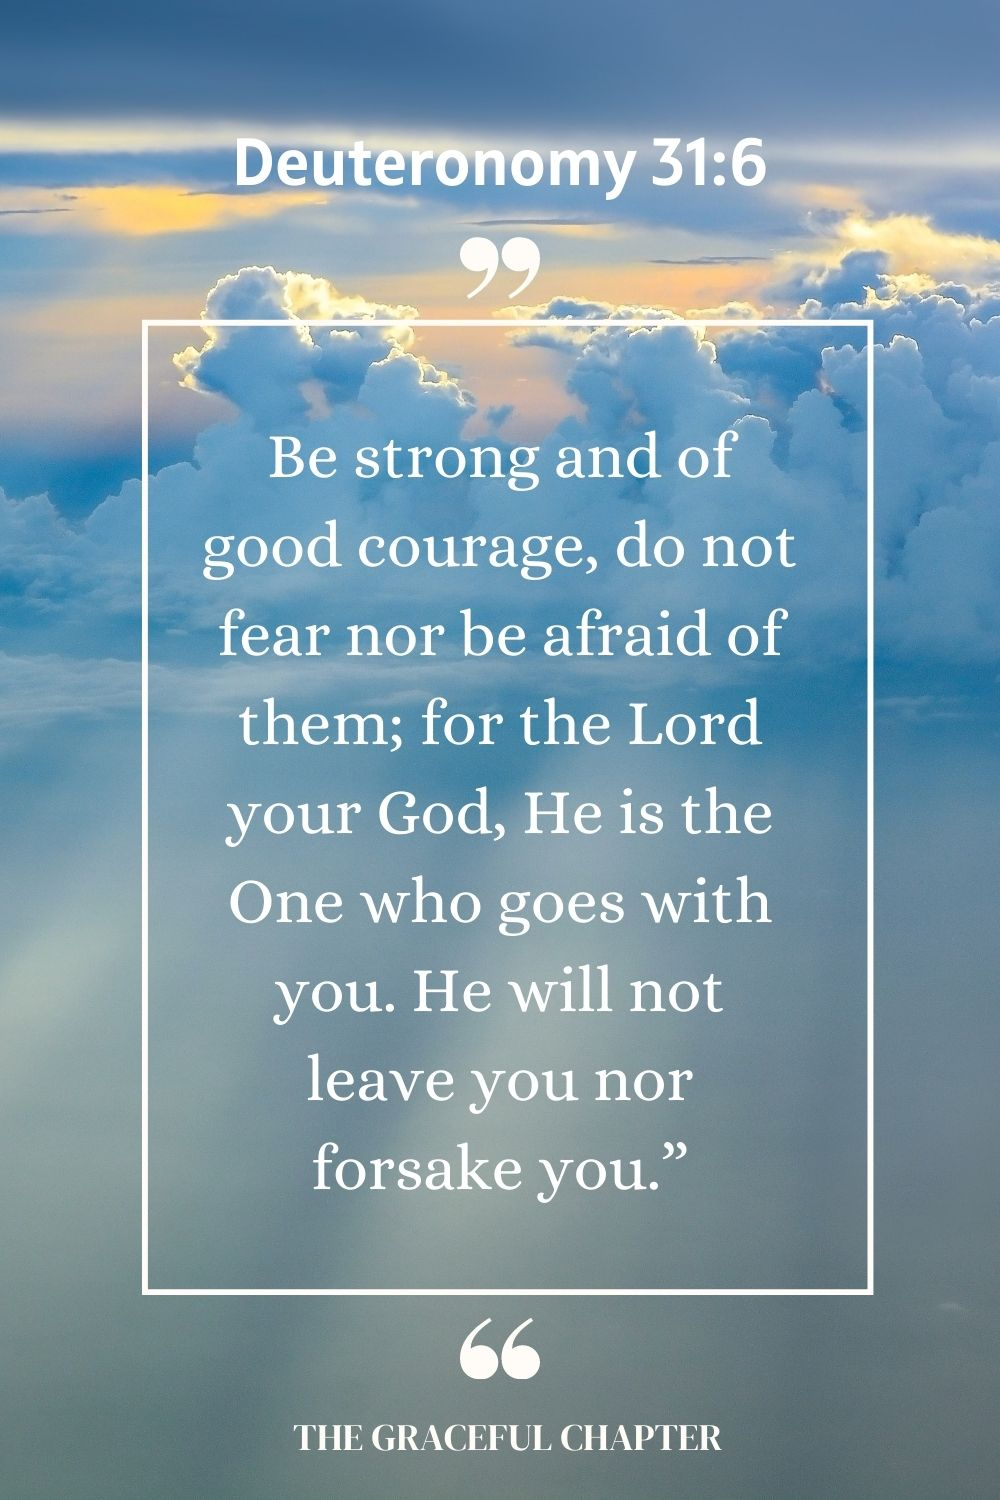 "Be strong and of good courage, do not fear nor be afraid of them; for the Lord your God, He is the One who goes with you. He will not leave you nor forsake you."" Deuteronomy 31:6"